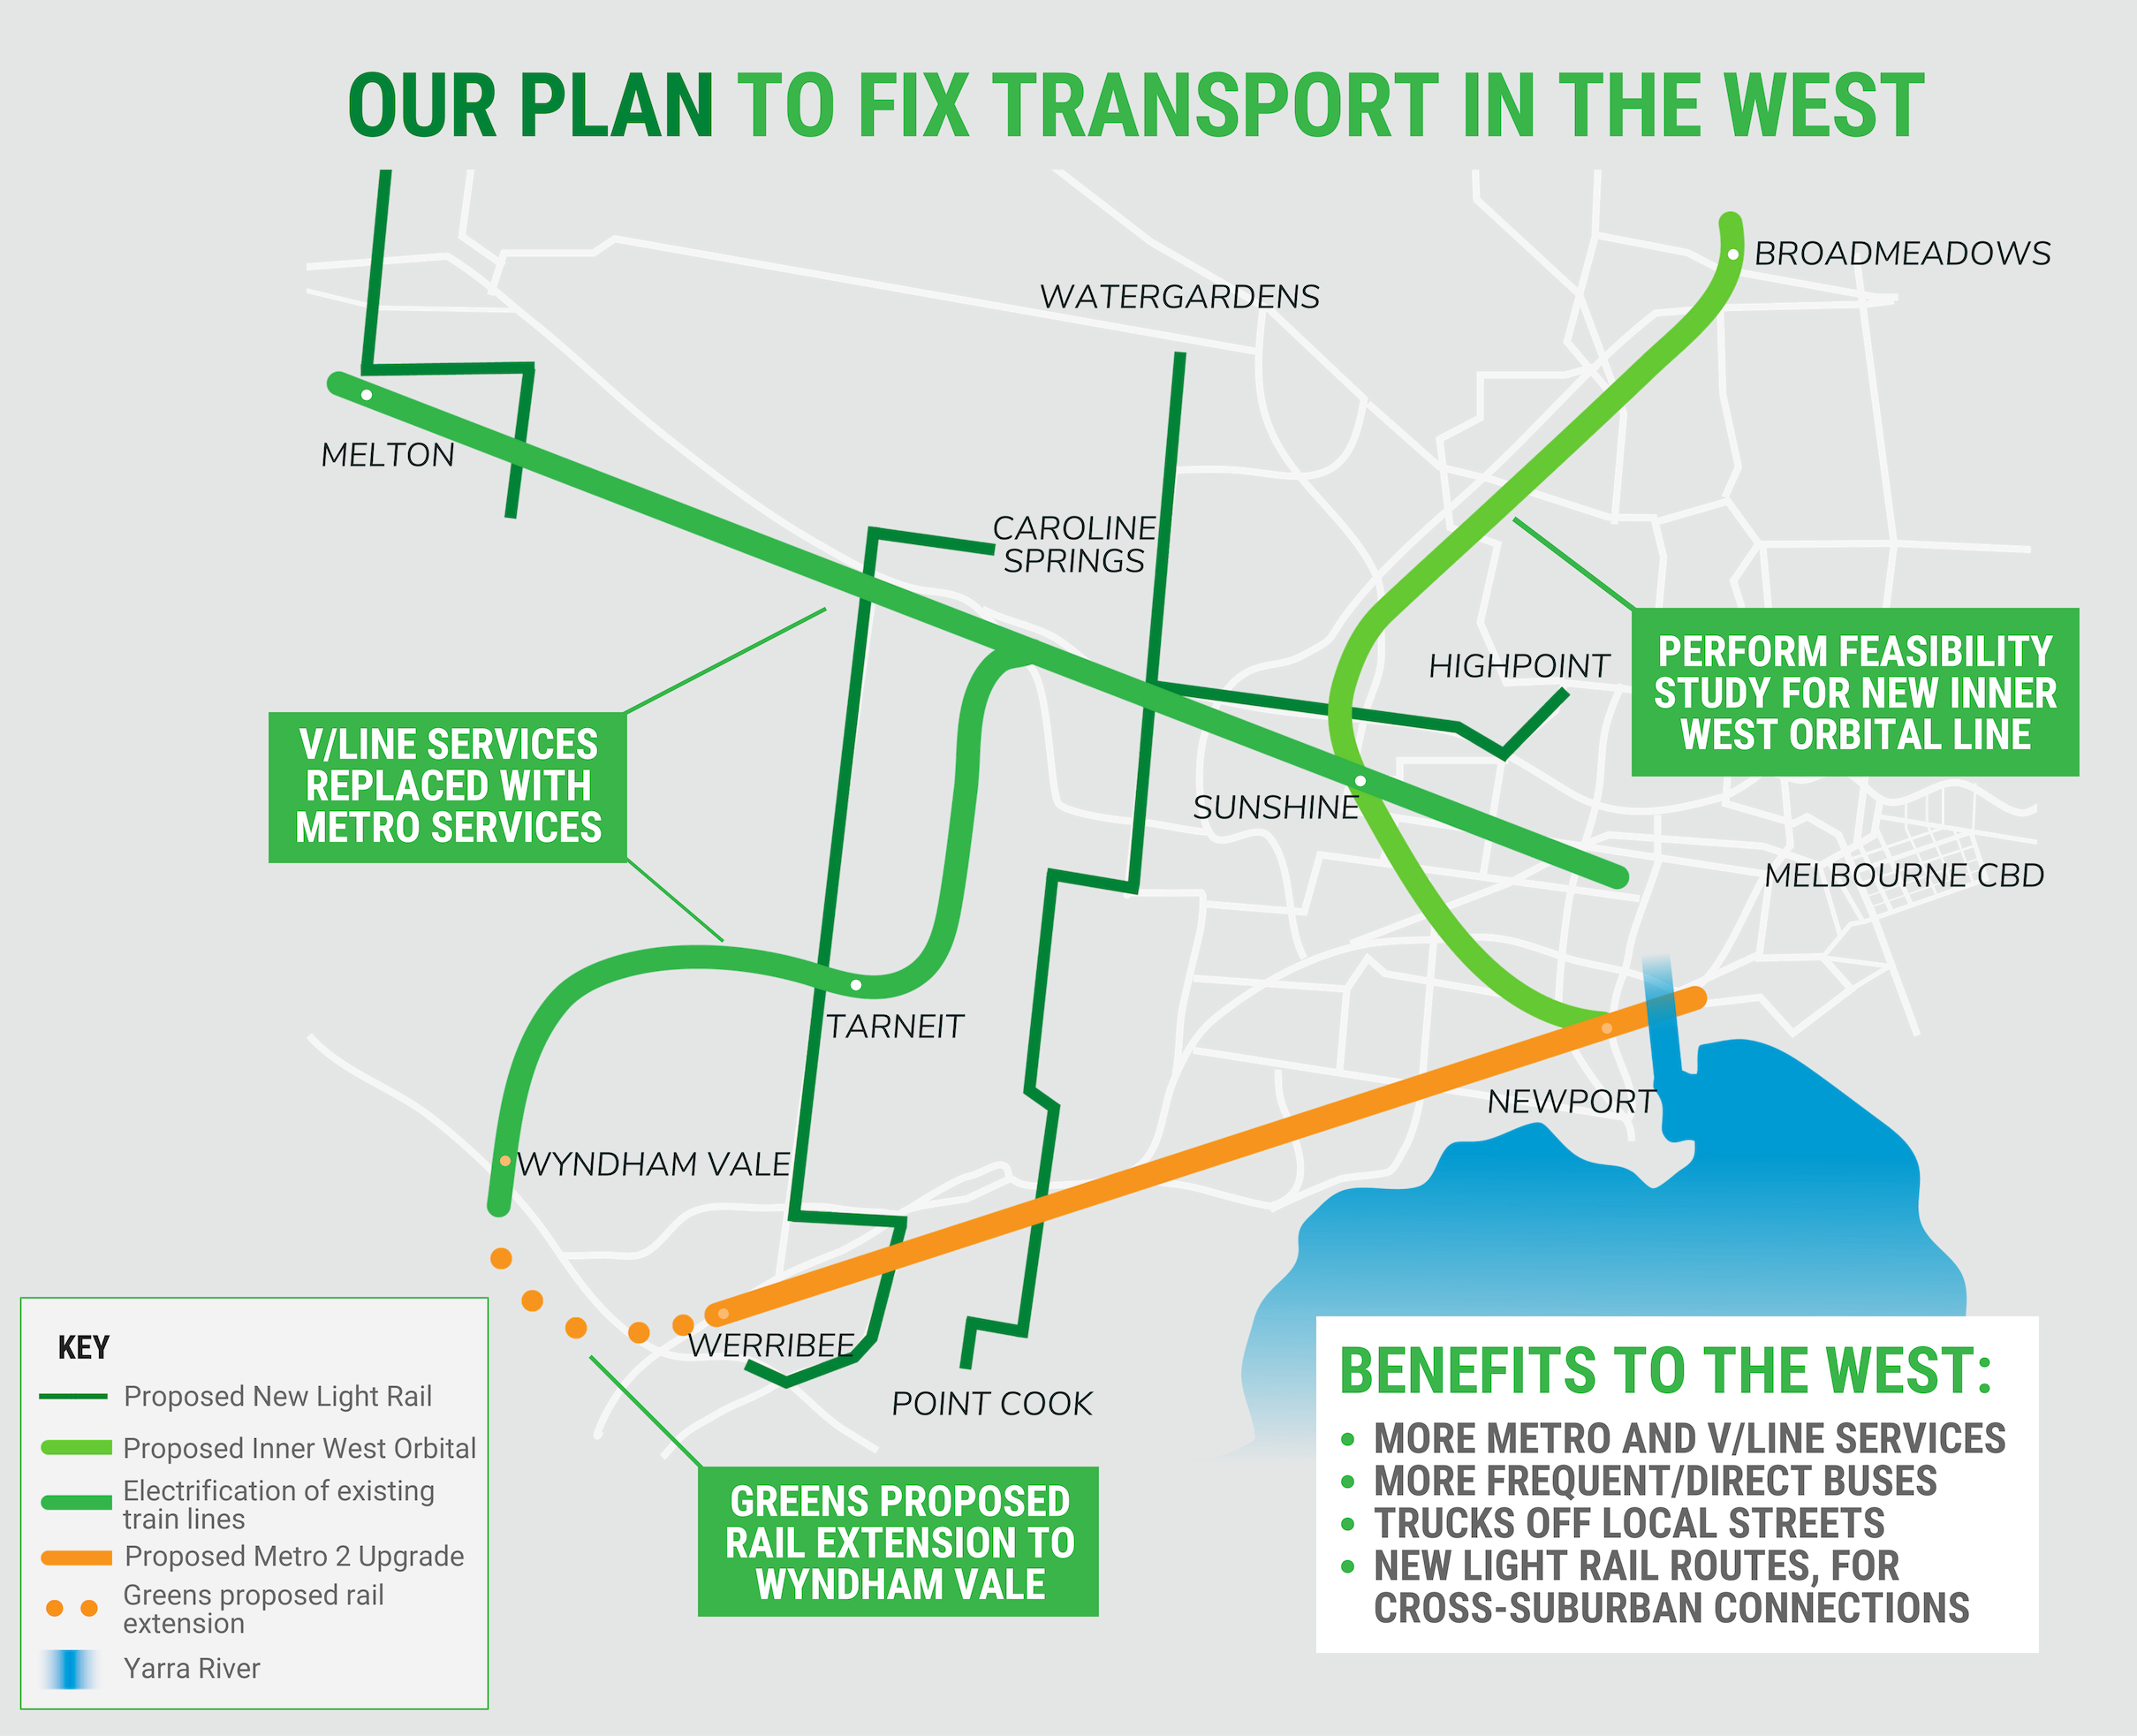 Our plan - Transport in the West Map